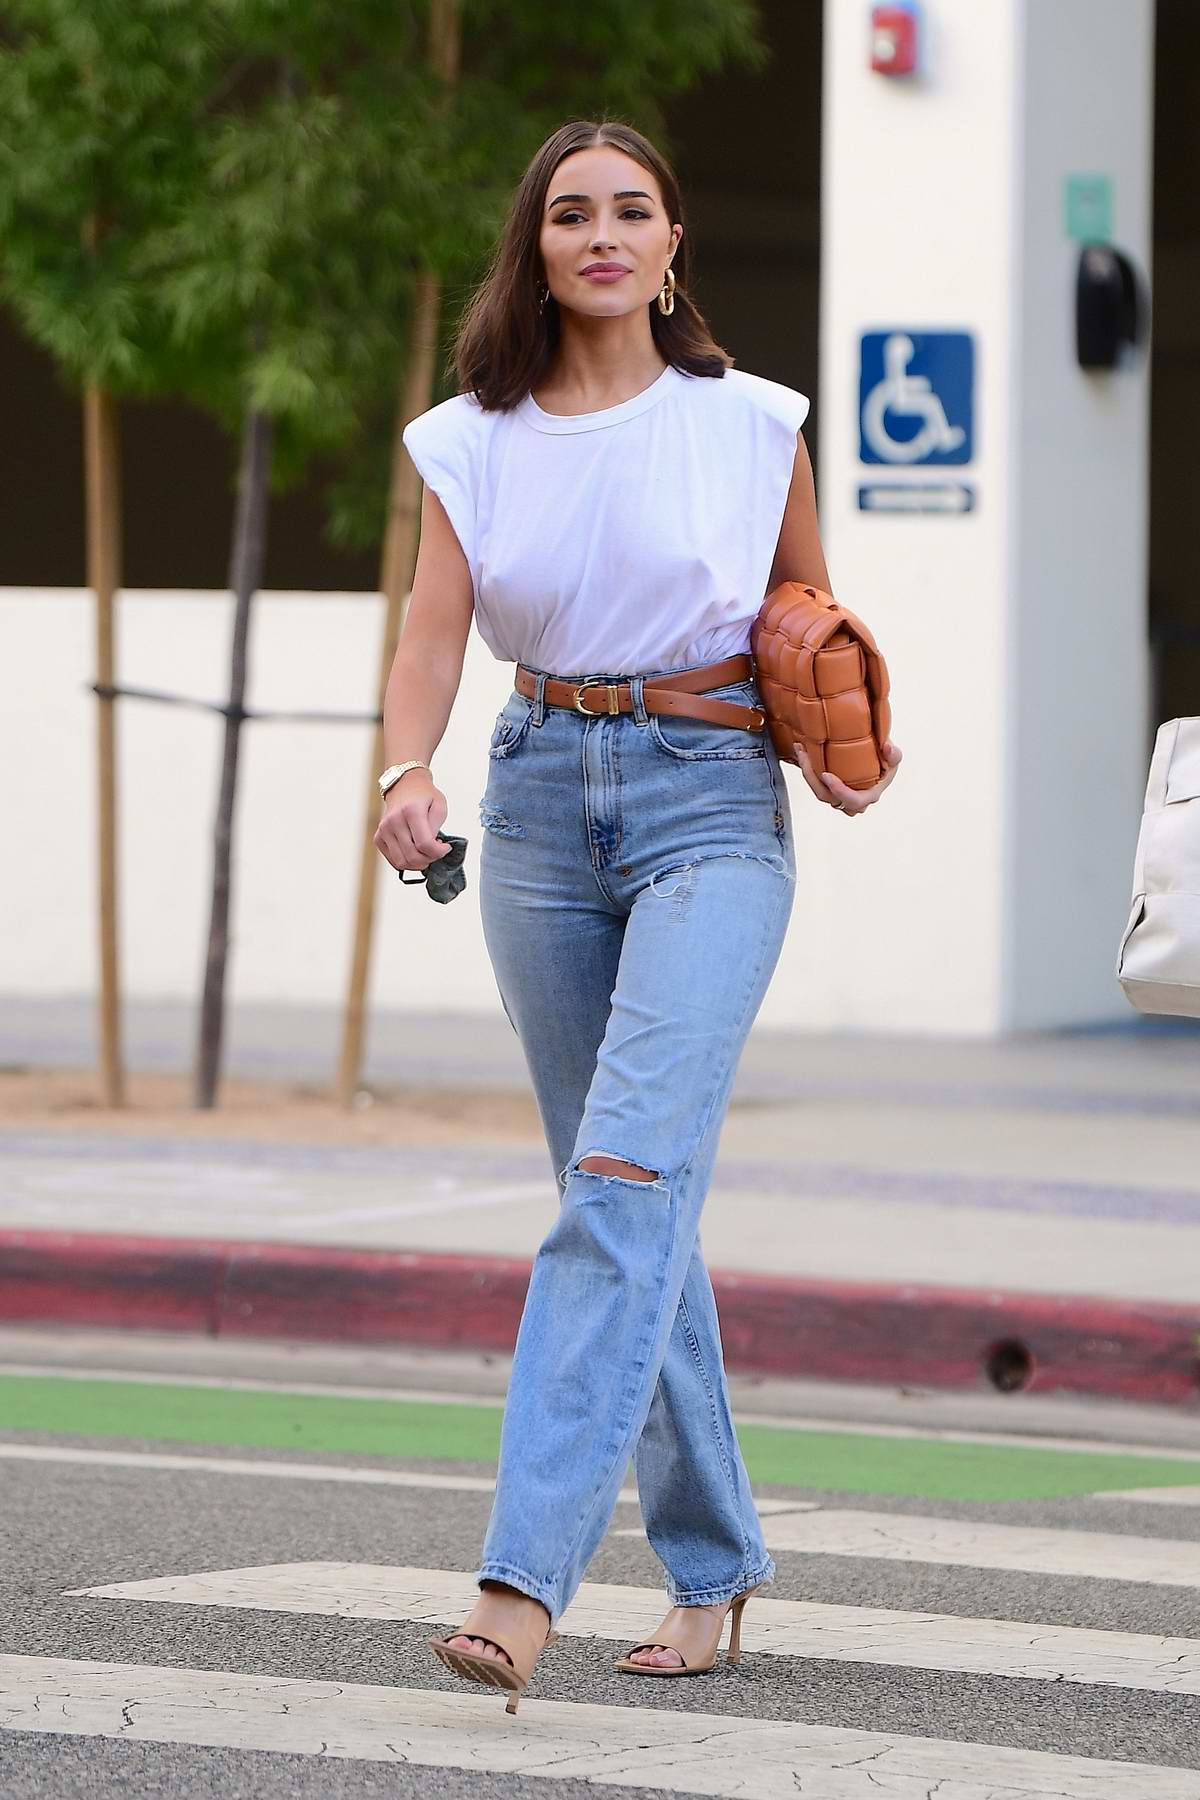 Olivia Culpo looks chic as she steps out for dinner with friends in Santa Monica, California